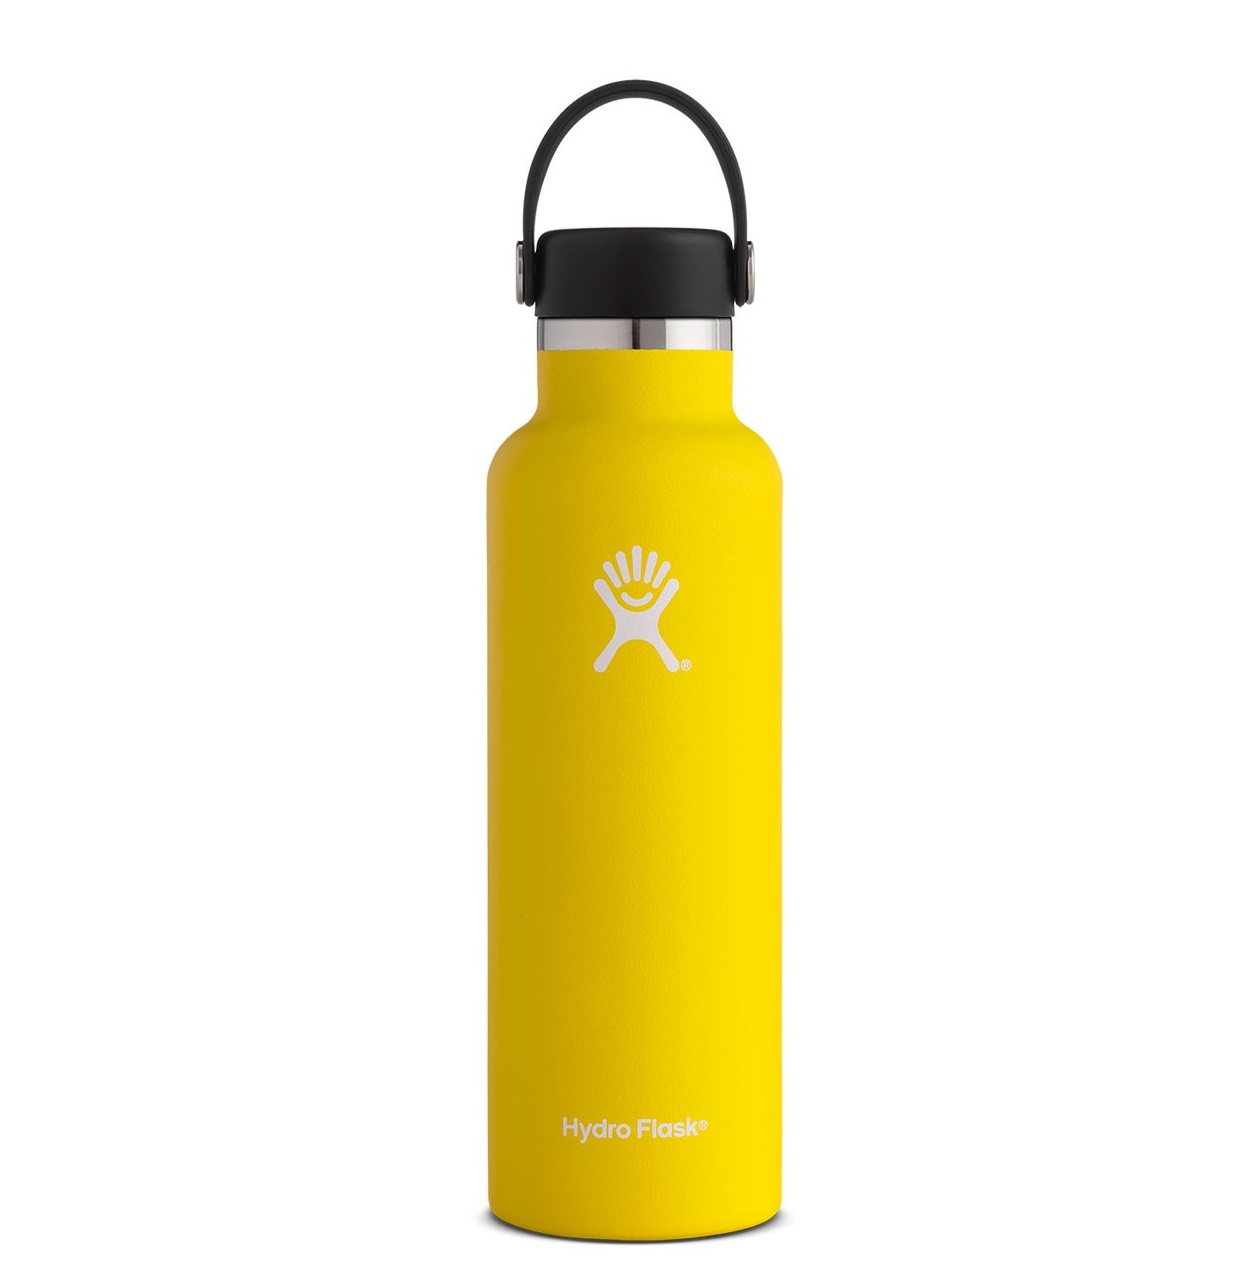 905749c817 hydro-flask-stainless-steel-vacuum-insulated-water-bottle-